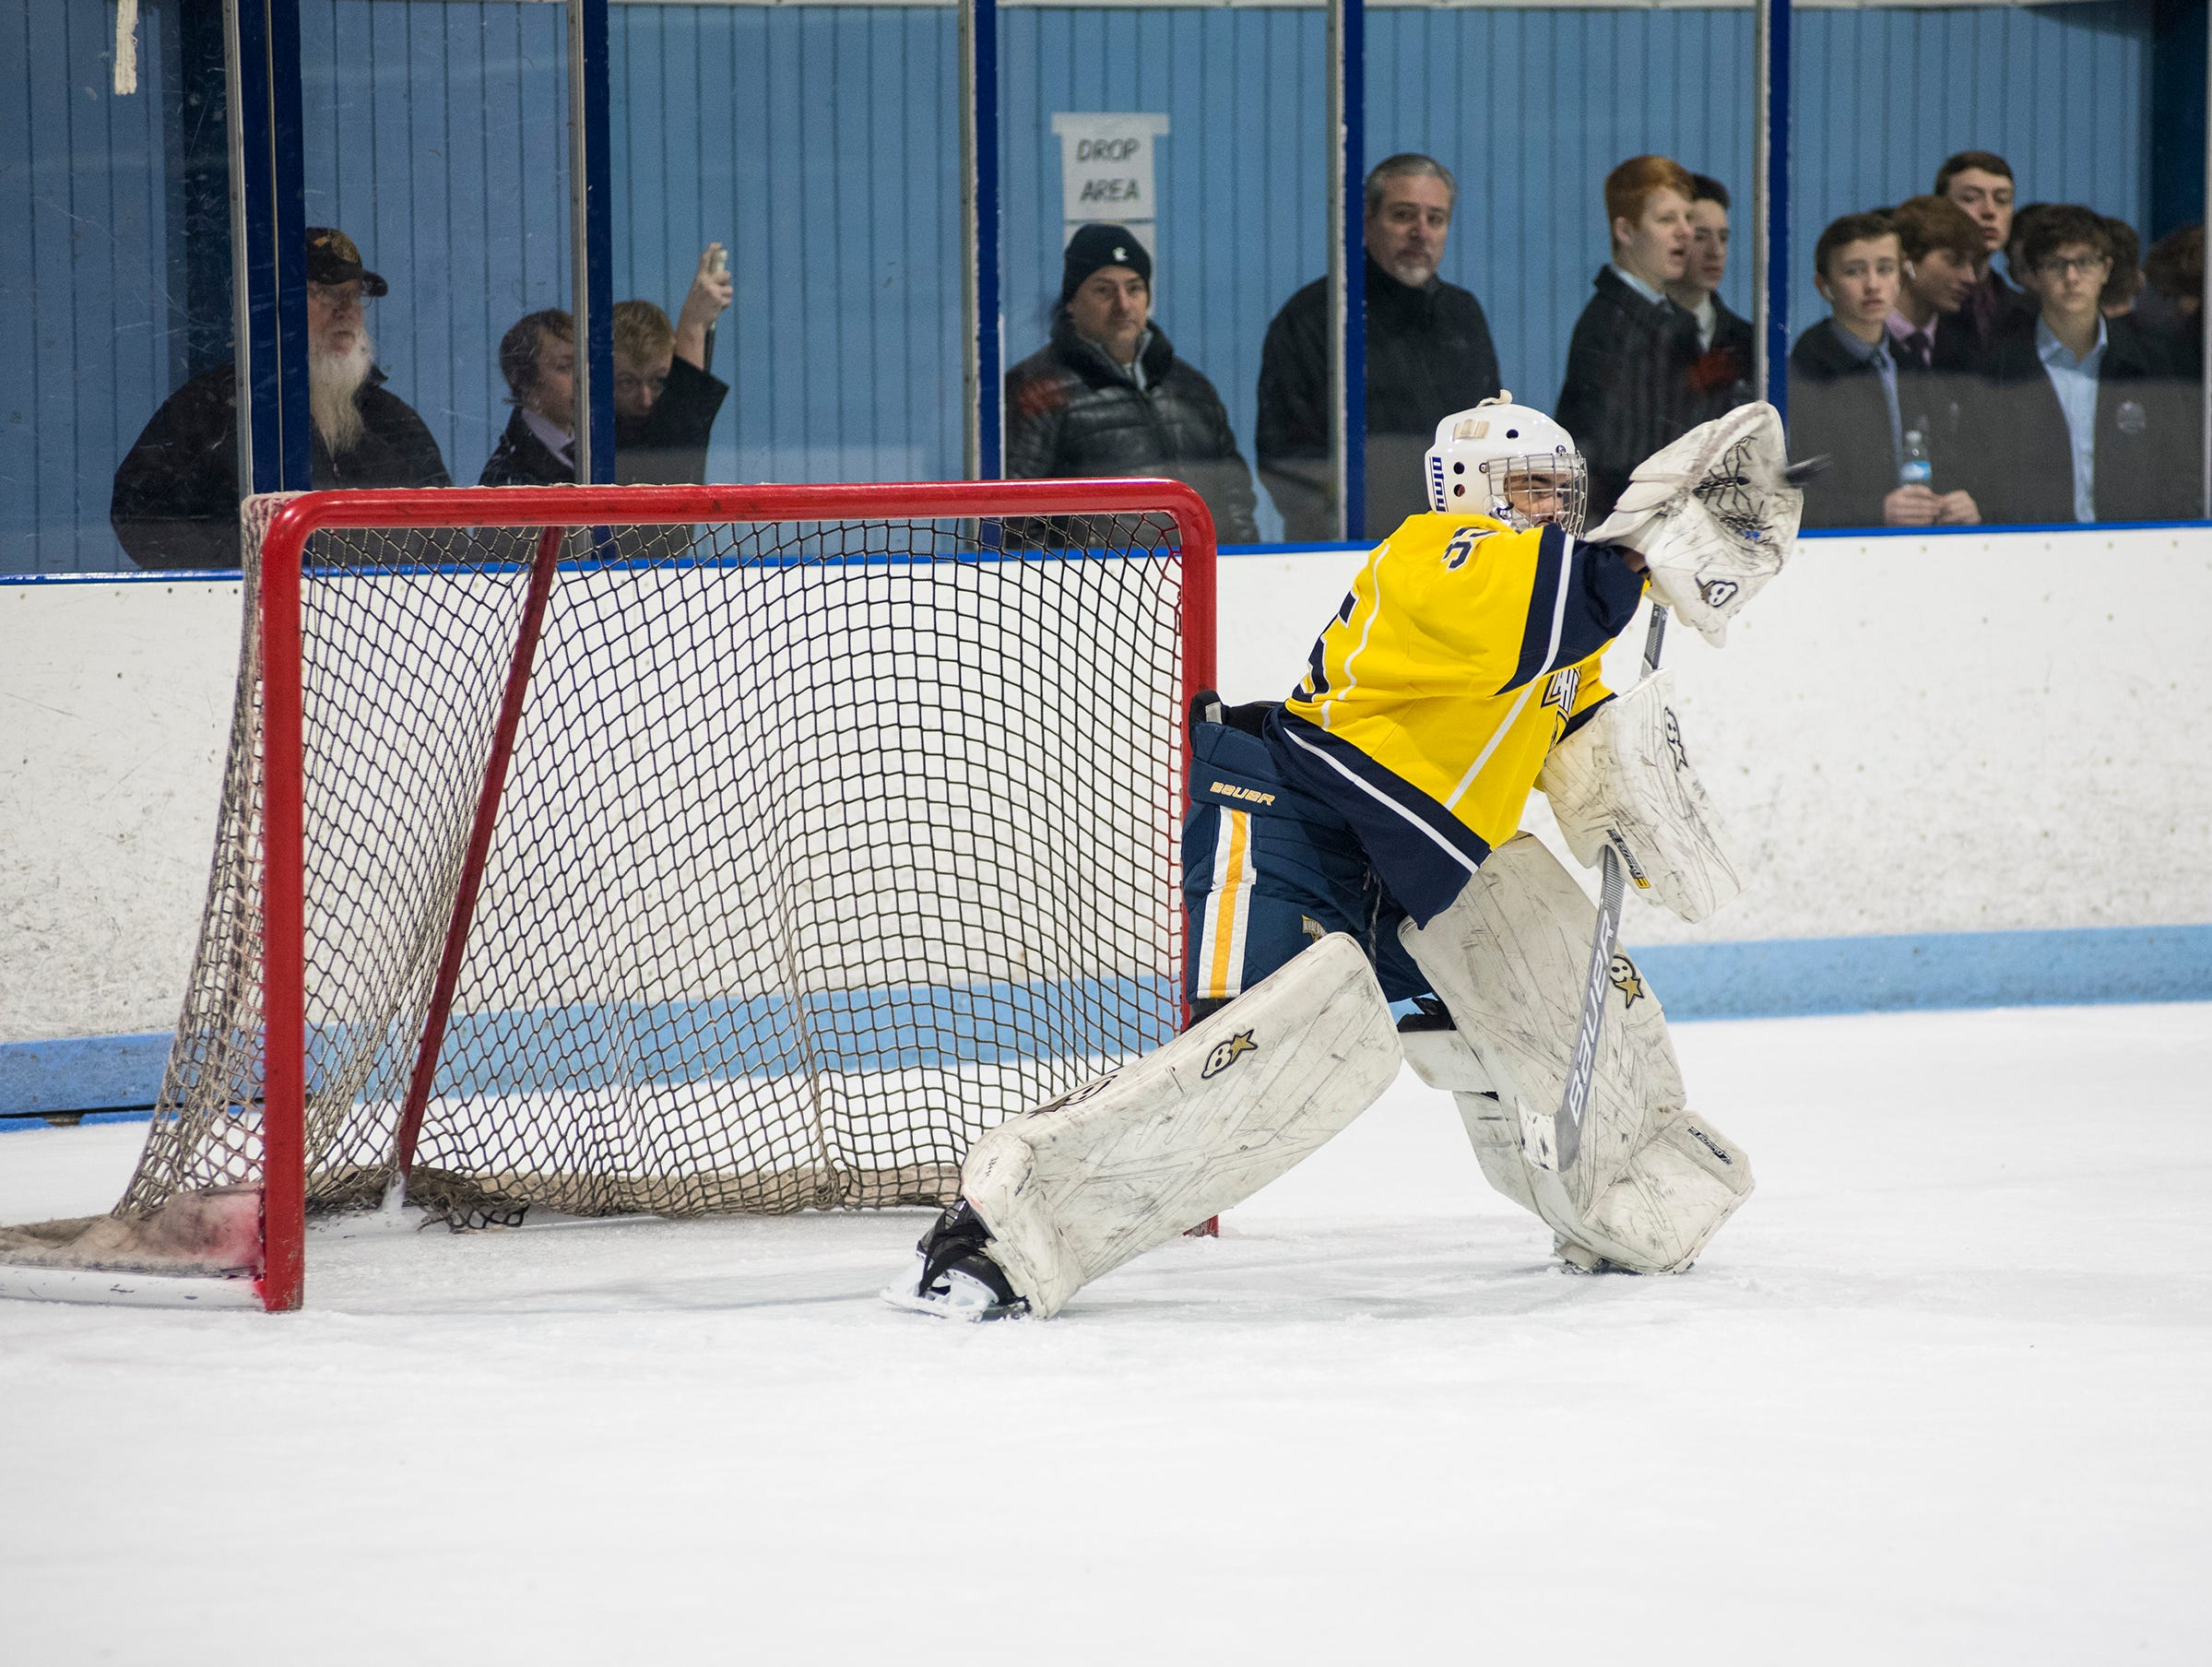 North Jersey Avalanche goalie Joseph Cartigiano catches the puck during their BAAA-E Silver Stick Finals match against Chicago Fury Friday, Jan. 4, 2019 at Glacier Pointe Ice Complex.